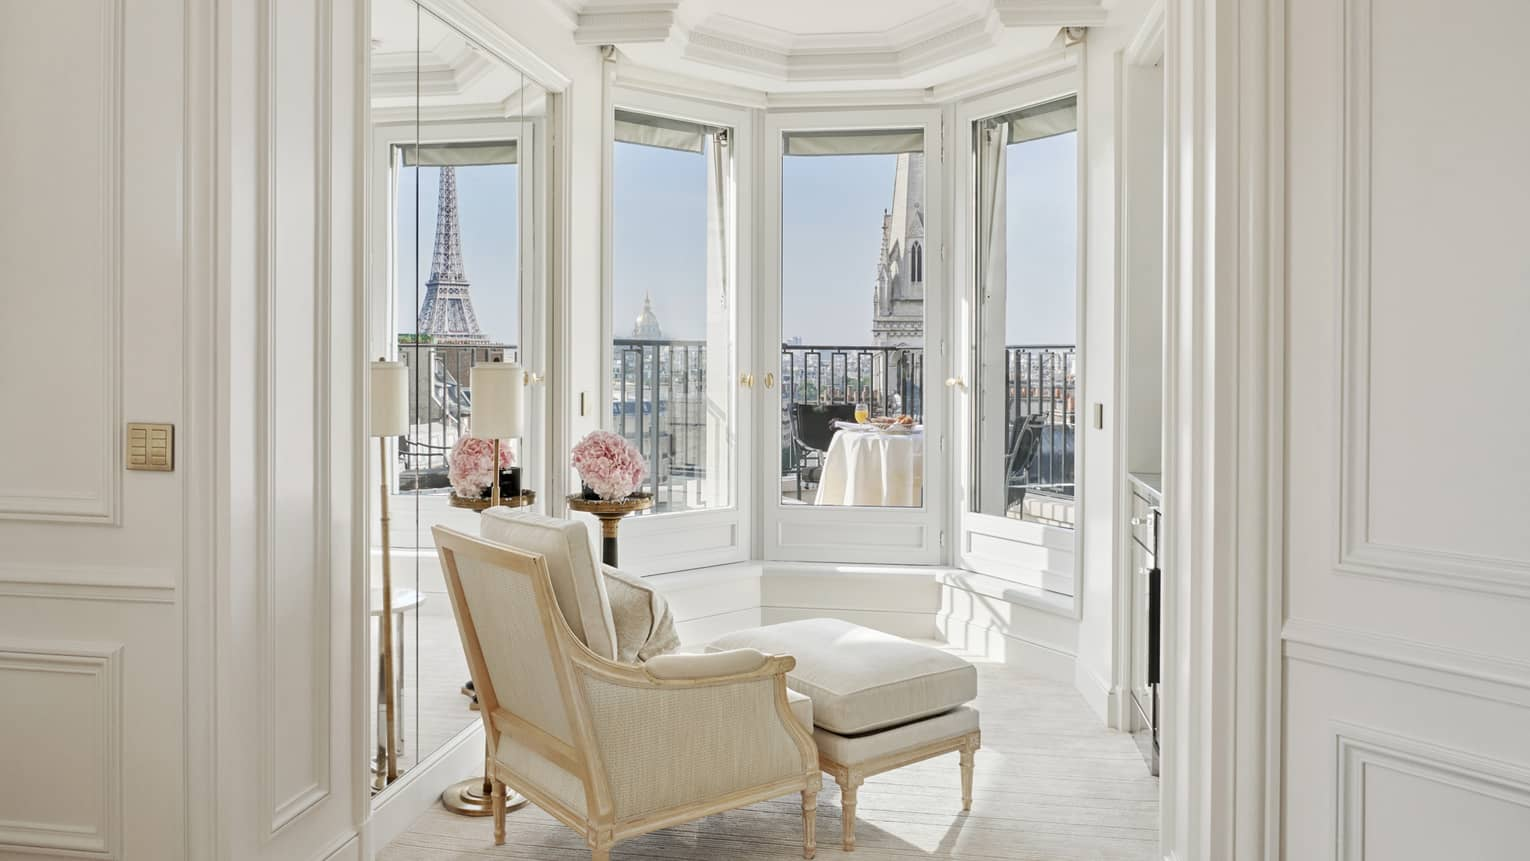 A white room has windows and a balcony with a direct view of the Eiffel Tower